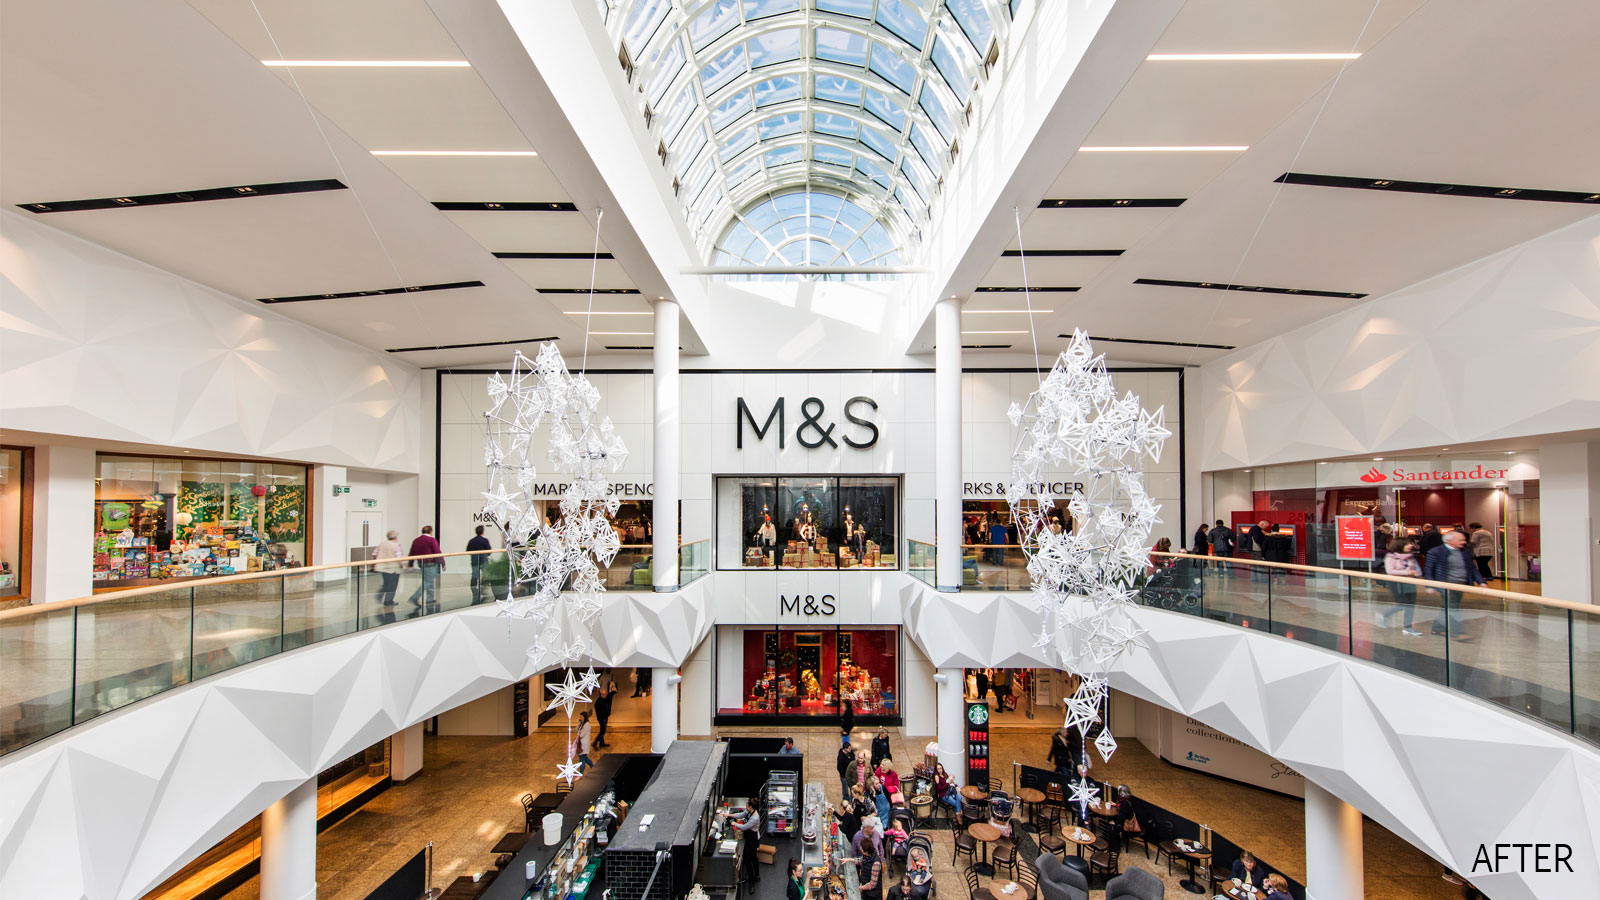 /globalassets/projects/meadowhall-refurbishment/aftermeadowhall_project-image-1600px-4.jpg